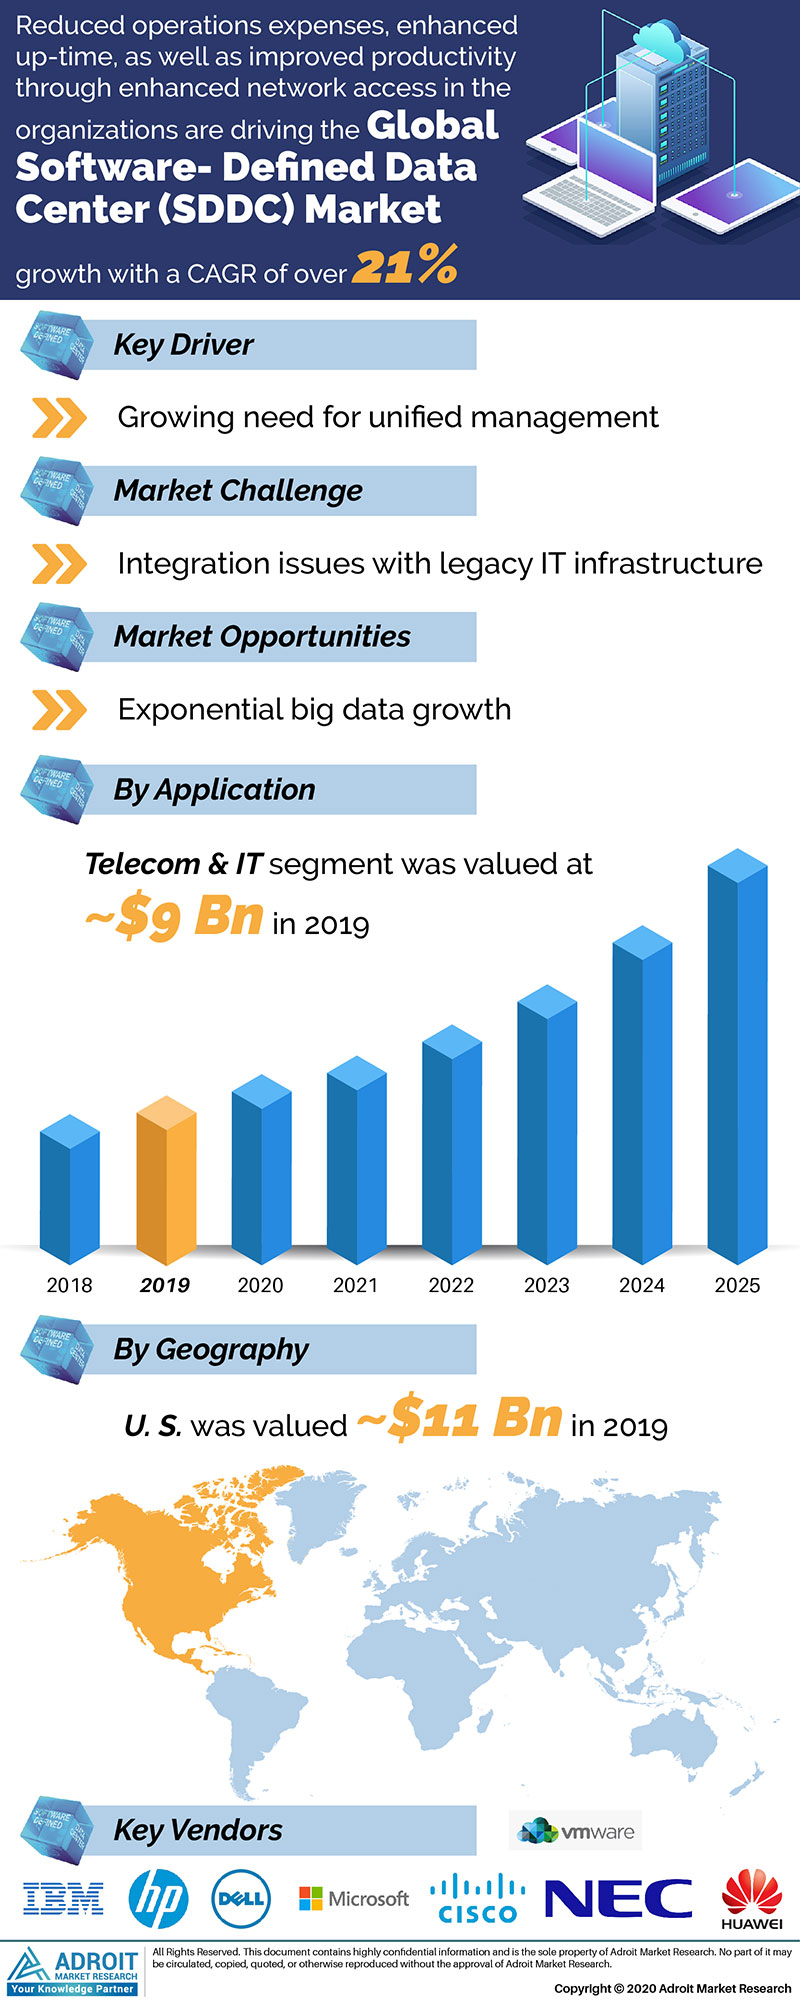 Software Defined Data Center Market Size 2017 By Application, Product, Region and Forecast 2019 to 2025